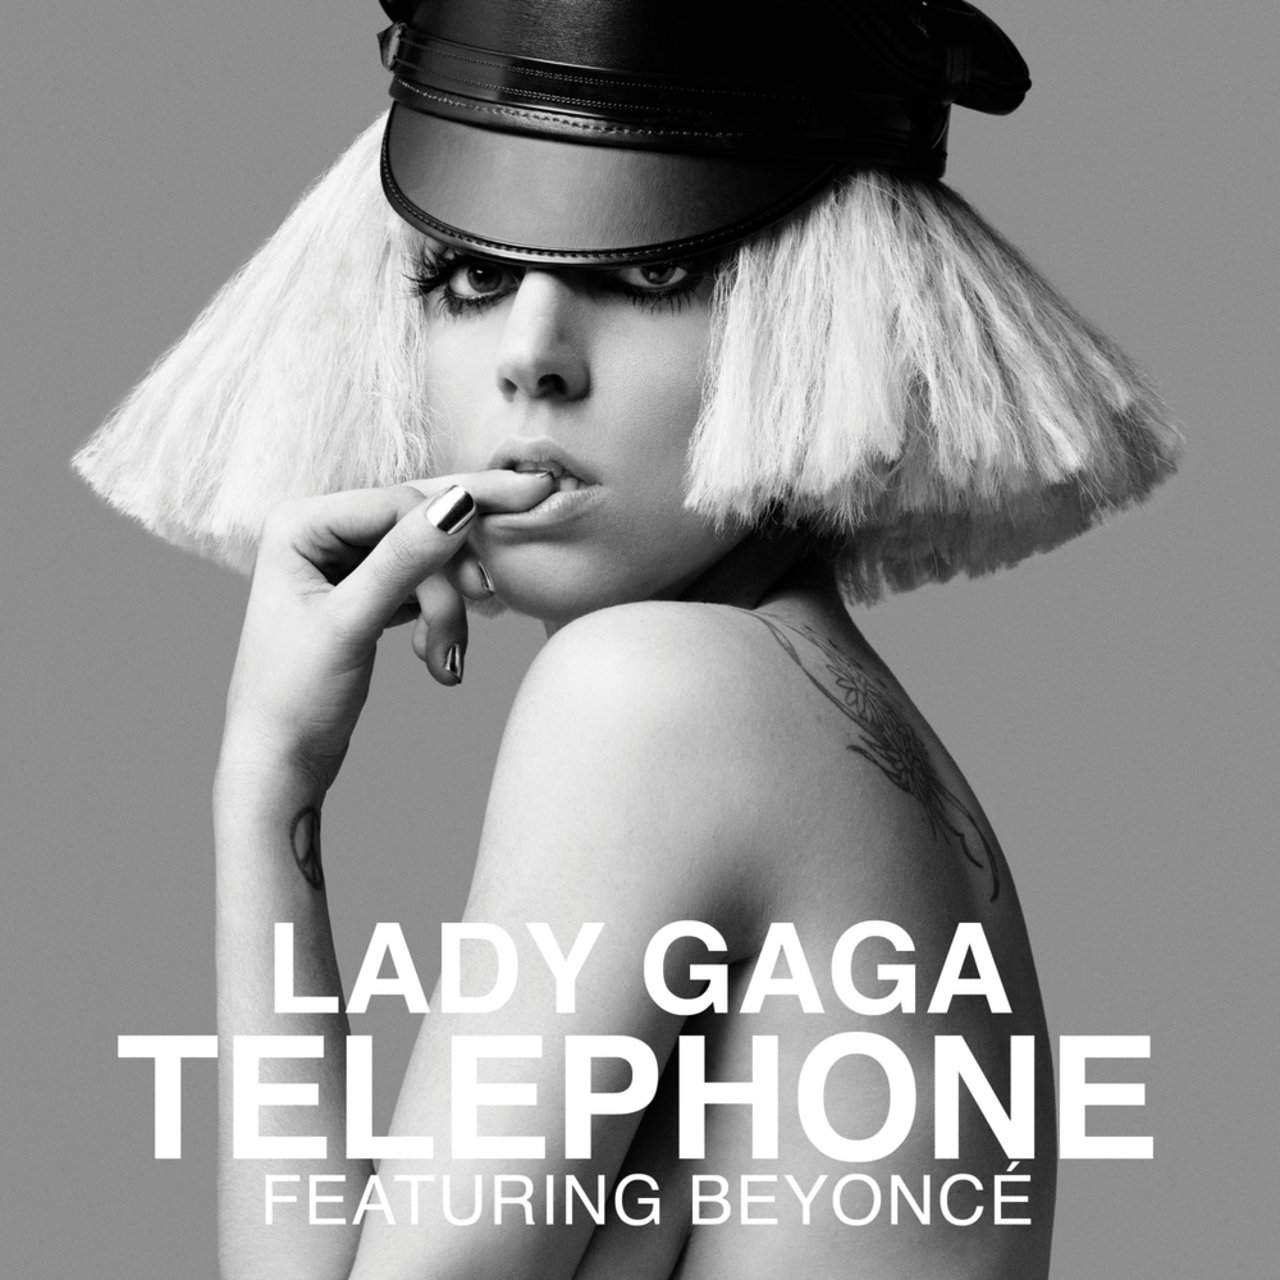 """Lady Gaga - """"Telephone"""" featuring Beyonce"""